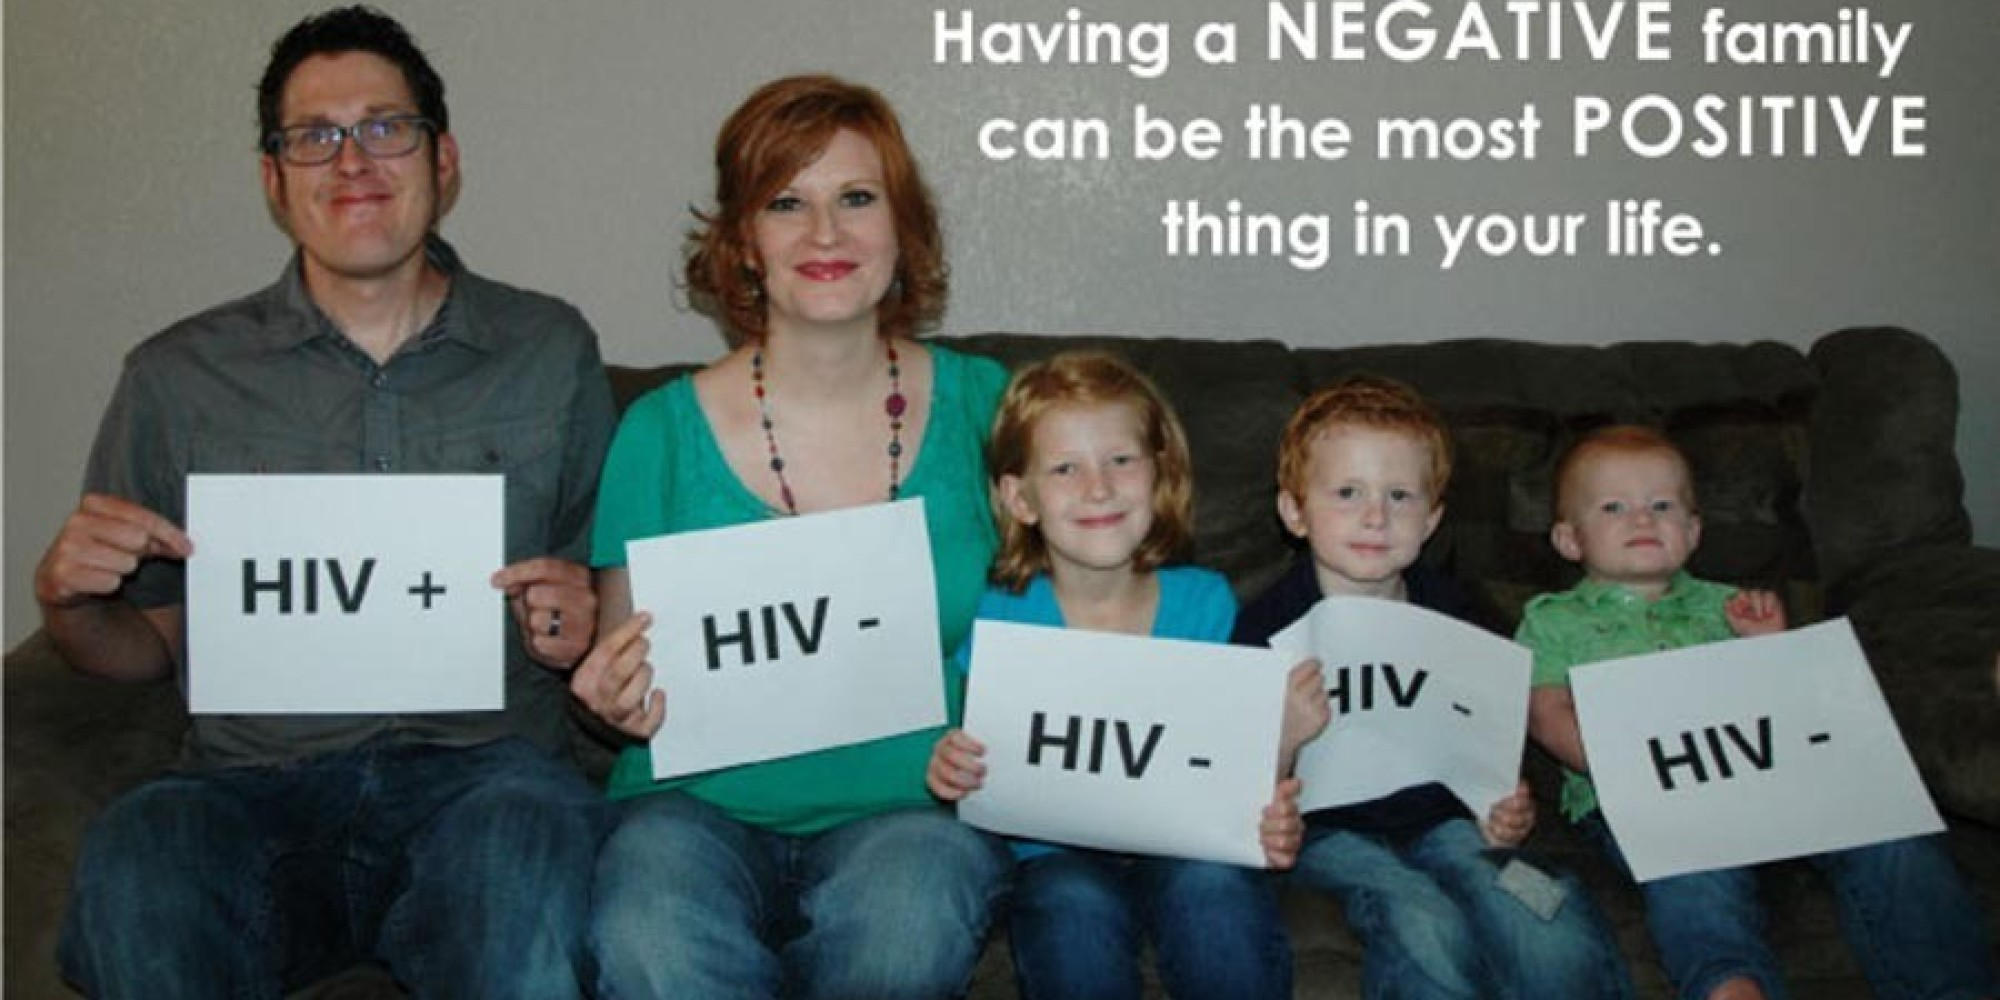 Andrew Pulsipher Is Hiv Positive But His Wife And Kids